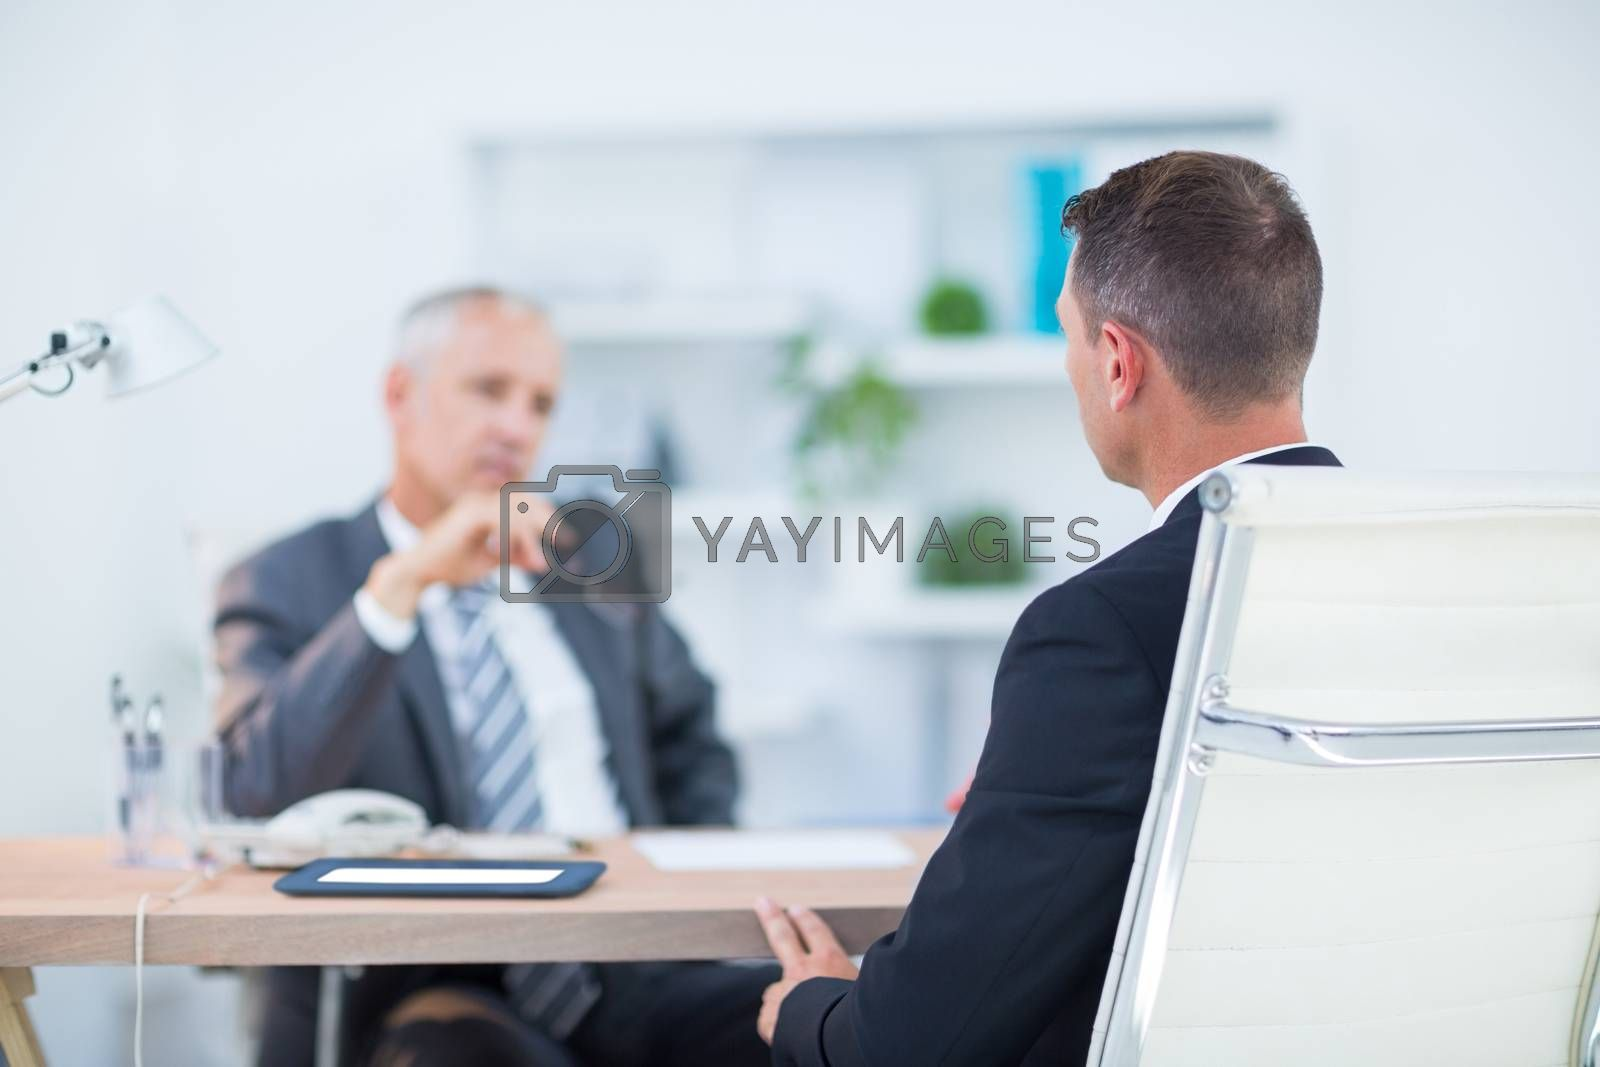 Royalty free image of Two businessmen sitting and speaking  by Wavebreakmedia